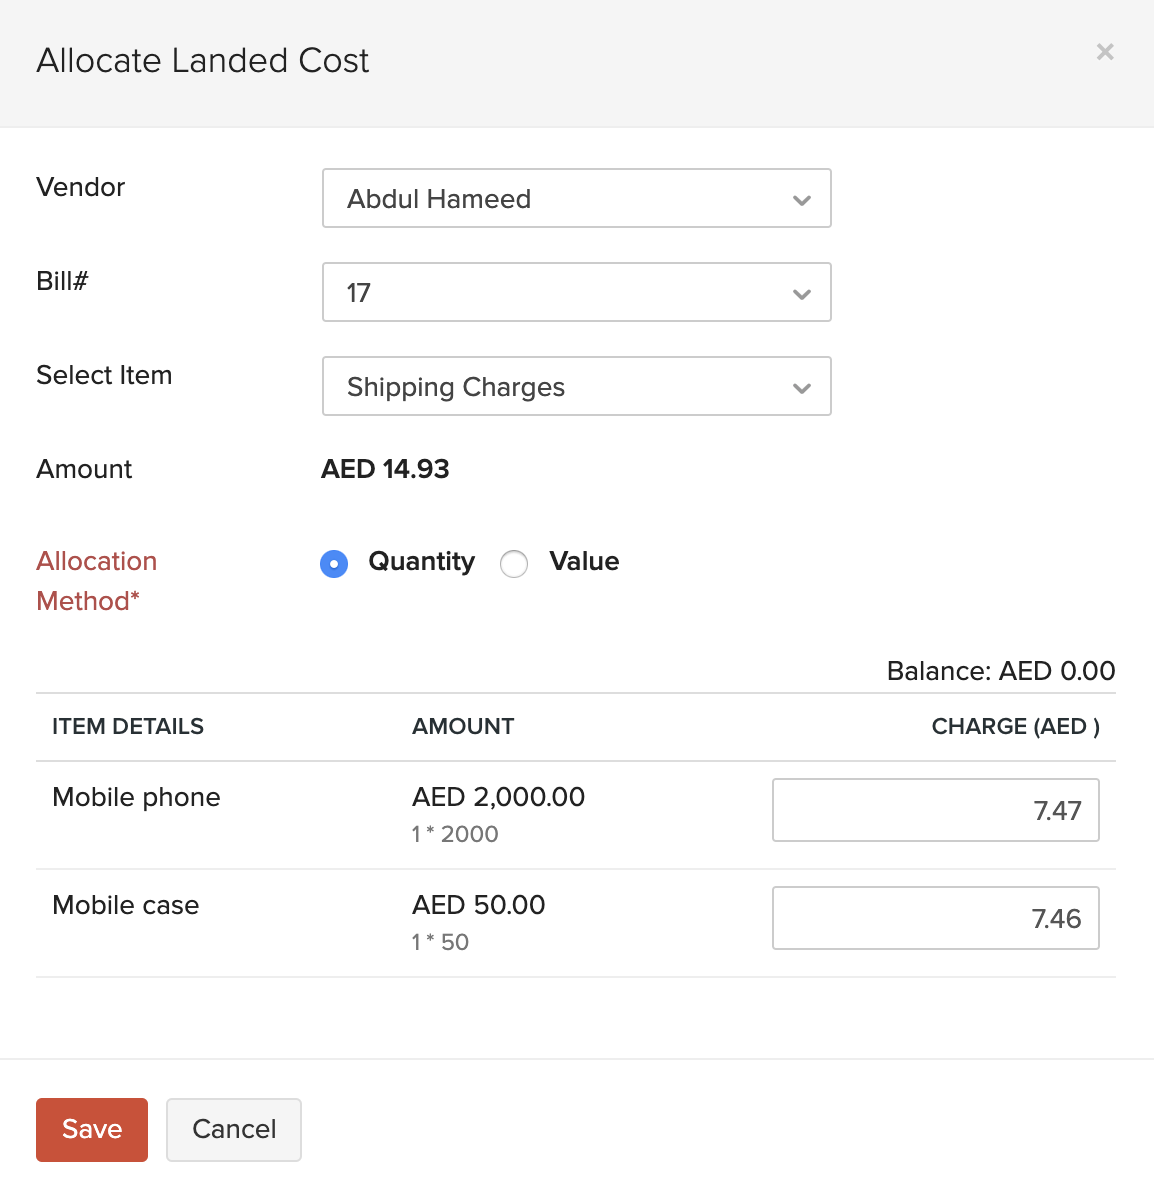 Allocate Landed Costs